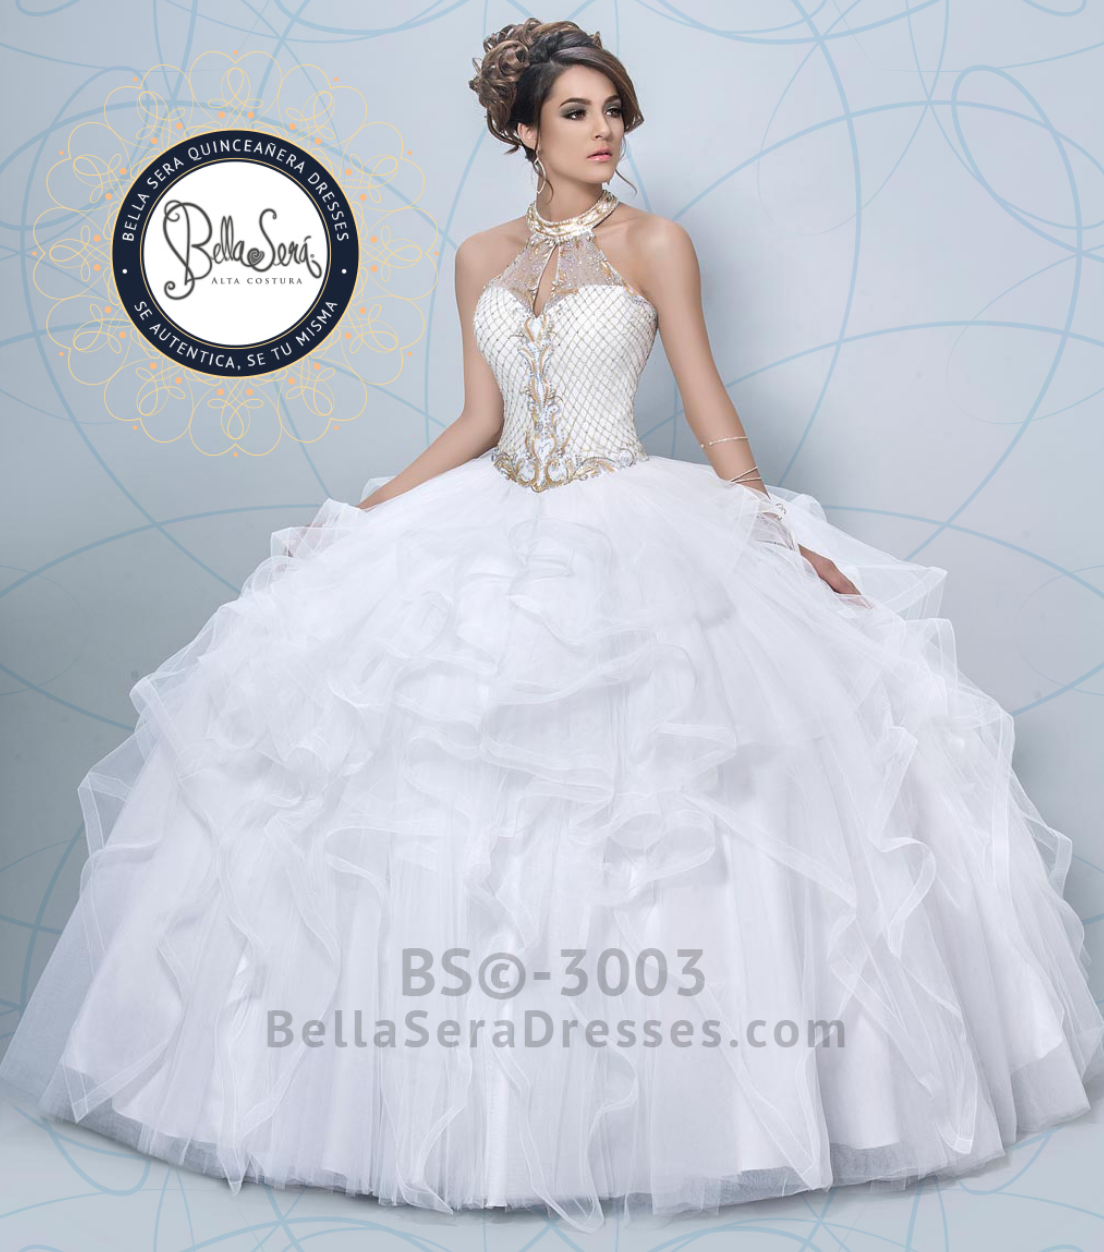 Cheap bridesmaids dresses houston tx bridesmaid dresses for Cheap wedding dresses houston tx